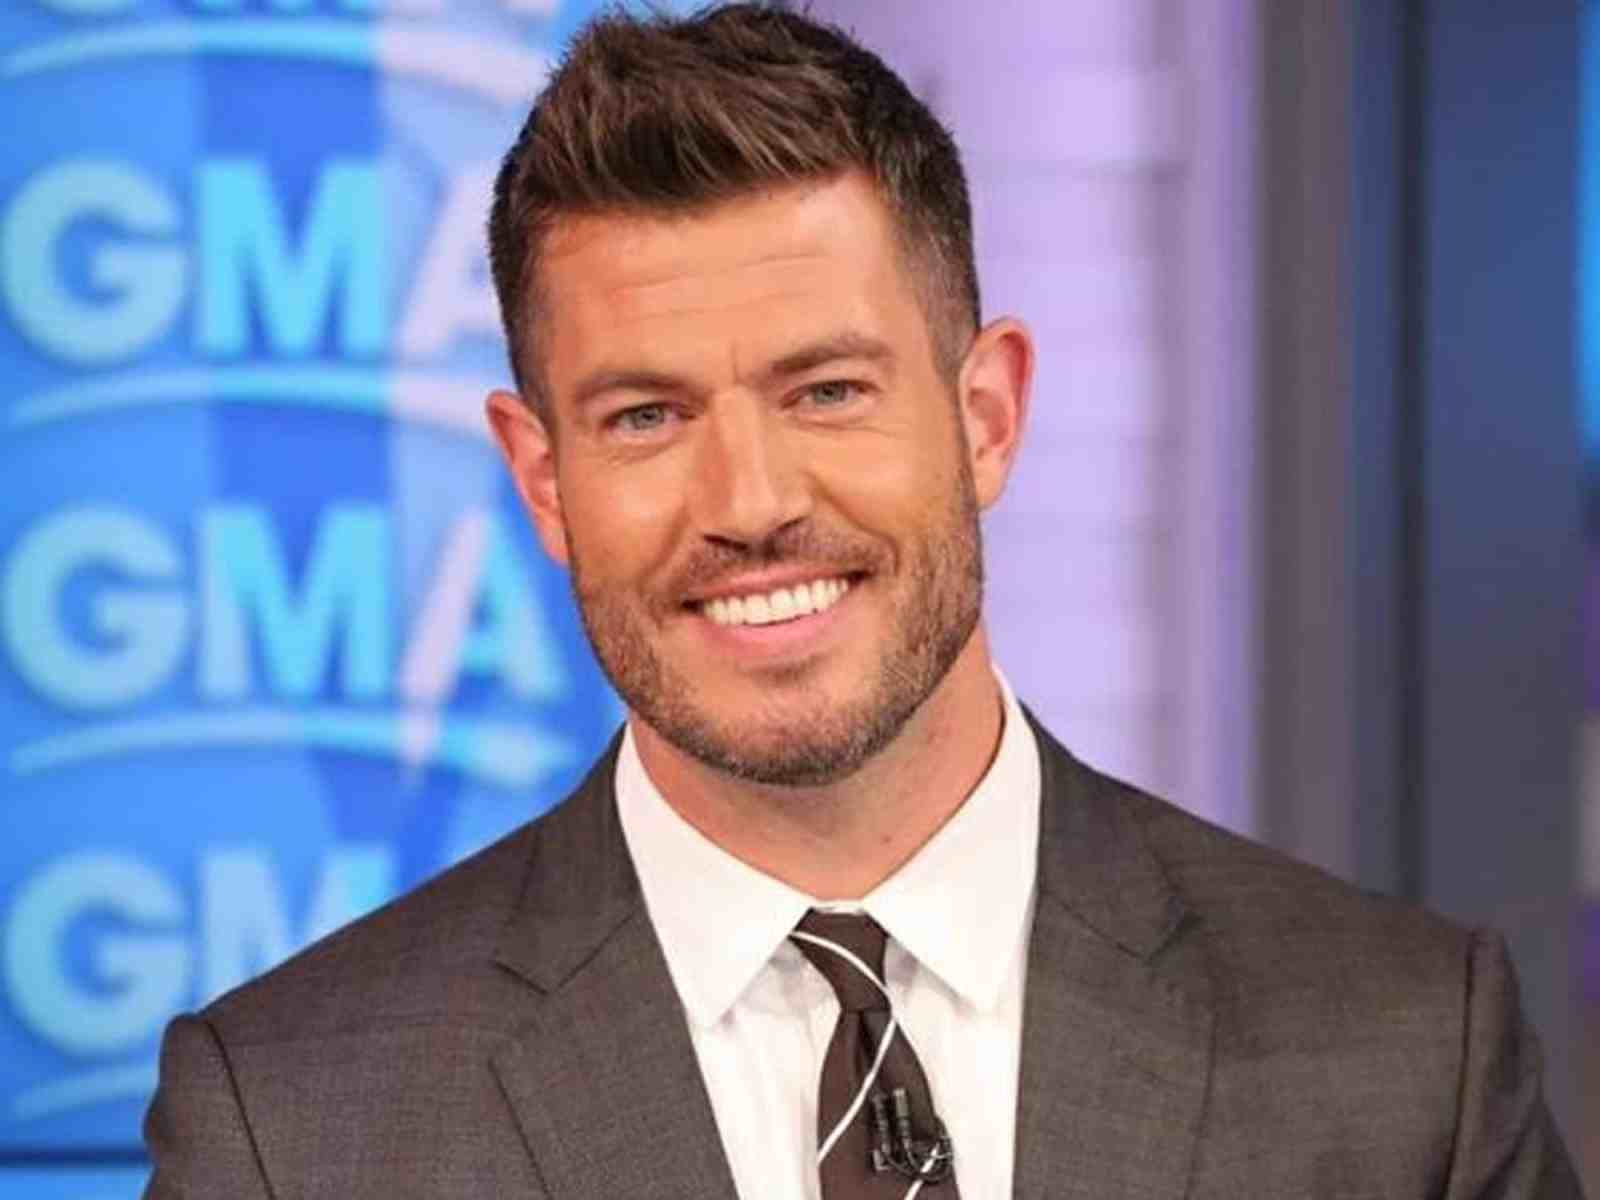 The creative minds behind ABC's 'Bachelor' franchise are bringing you a new dating series this summer. Hosted by former NFL player and 'Bachelor' Jesse Palmer, the new series 'The Proposal' promises as much, if not more, outrageous dating shenanigans for all you reality TV junkies.